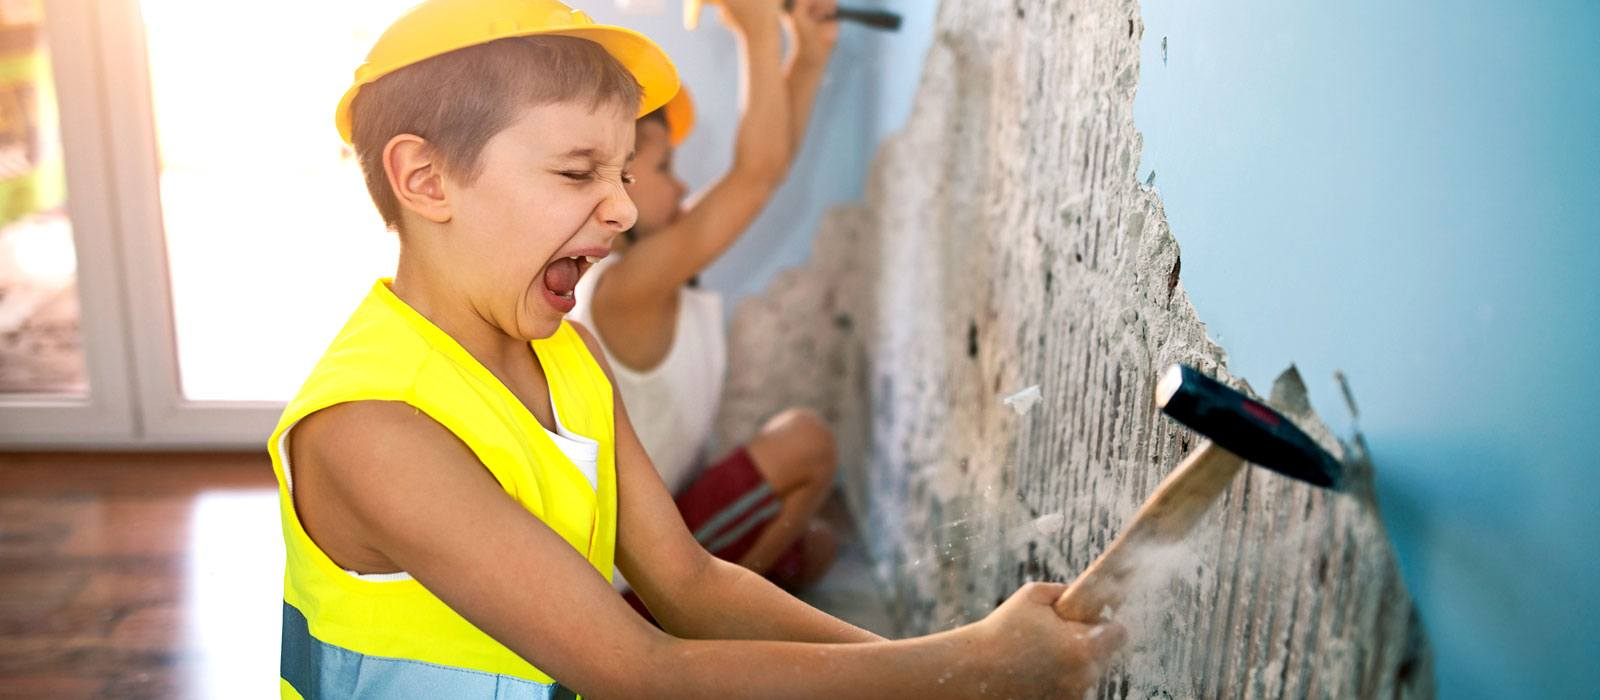 A boy dressed as a construction worker and busting through an old wall.